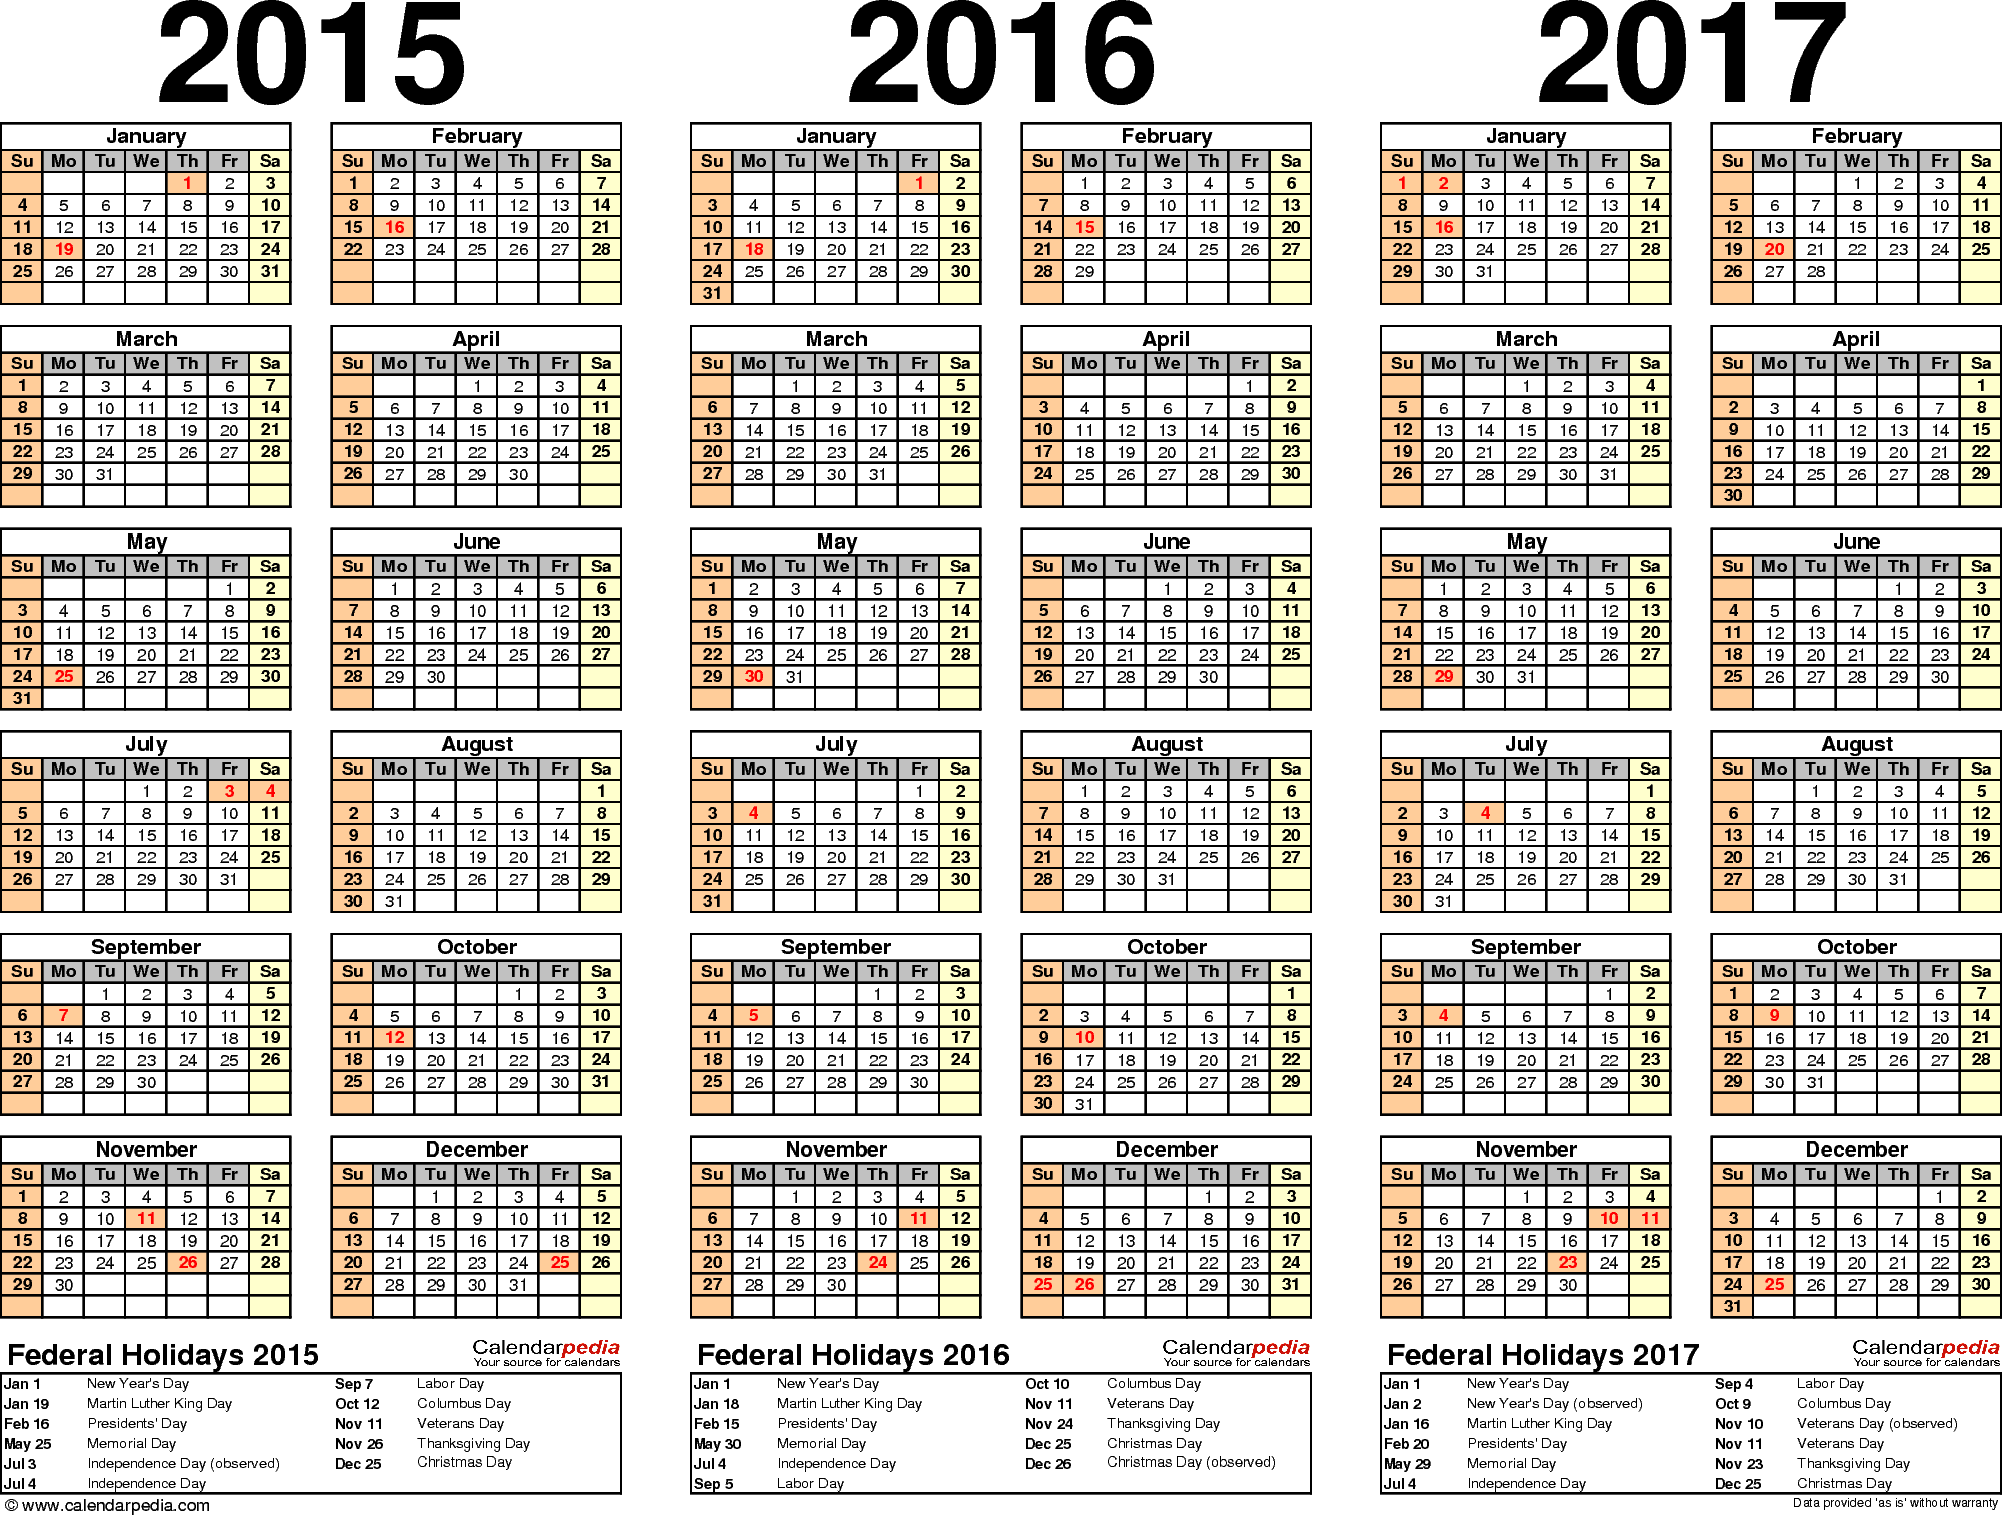 Template 2: PDF template for three year calendar 2015/2016/2017 (landscape orientation, 1 page)